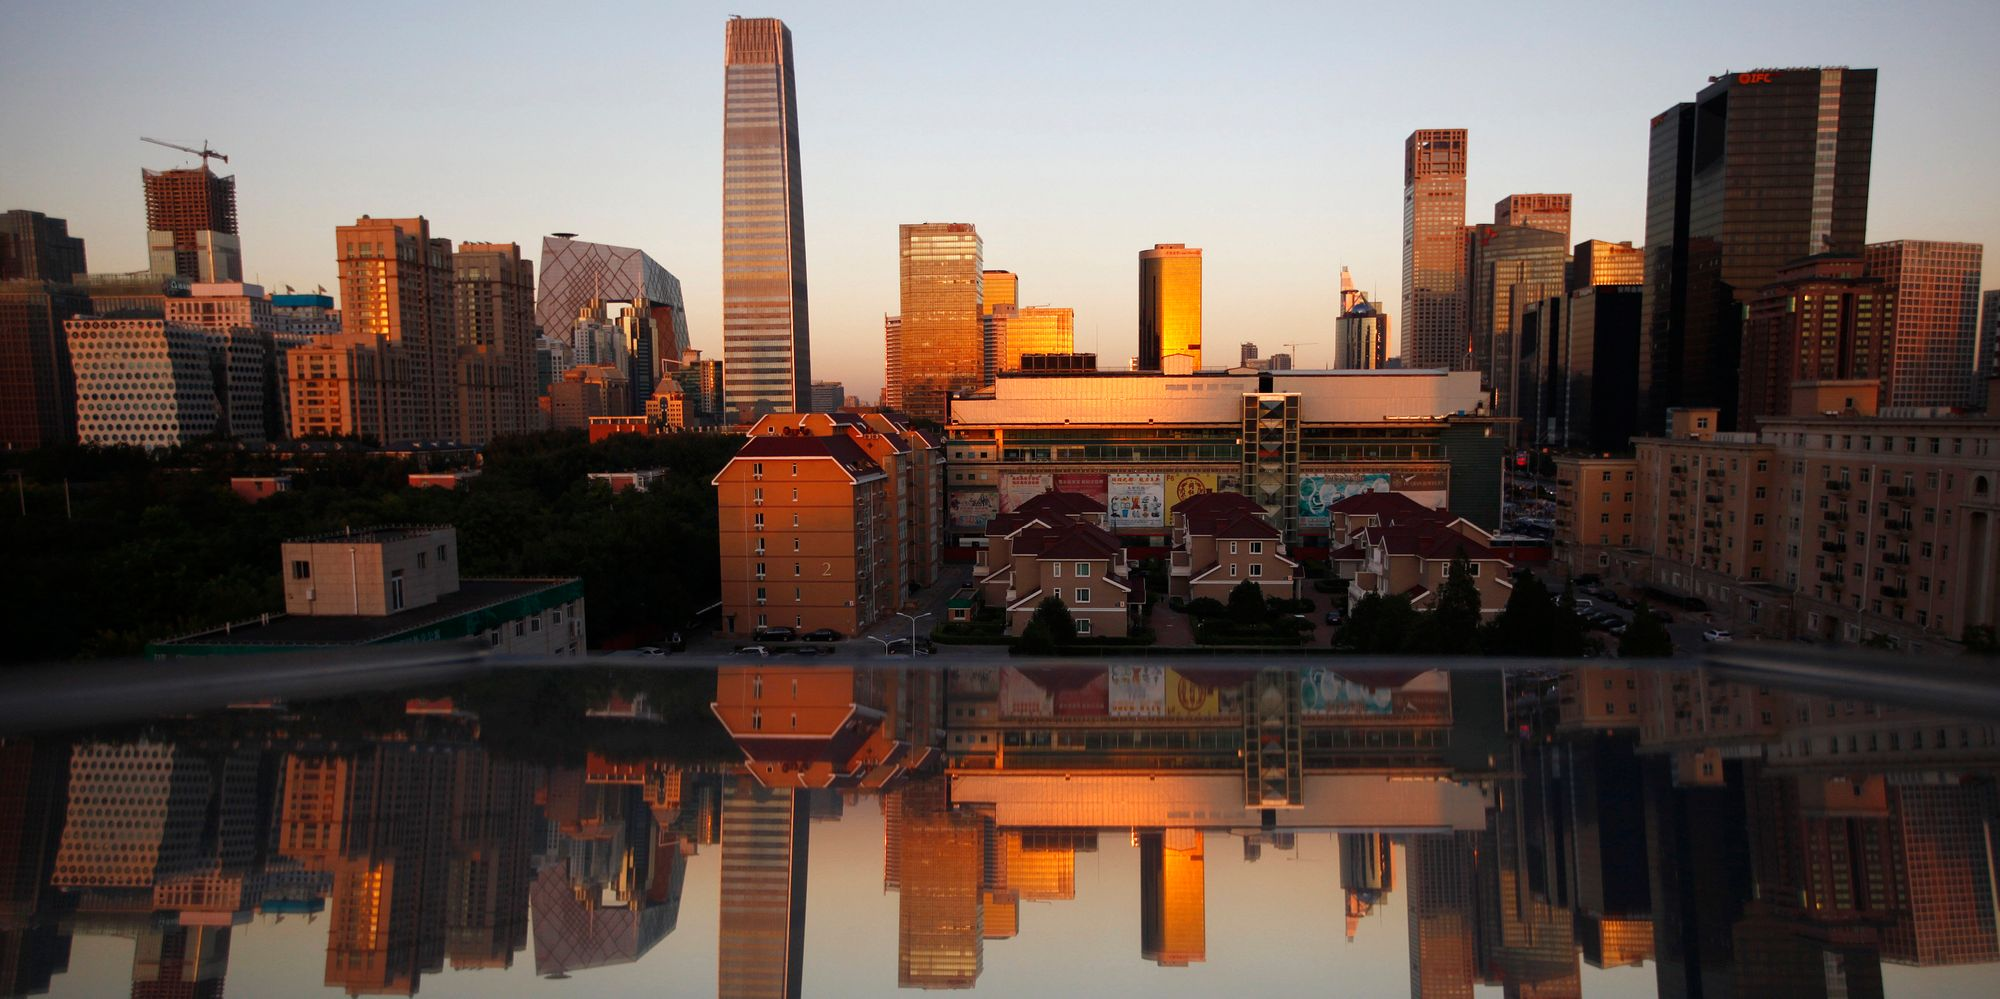 Beijing Is Sinking At An Alarming Rate: Study